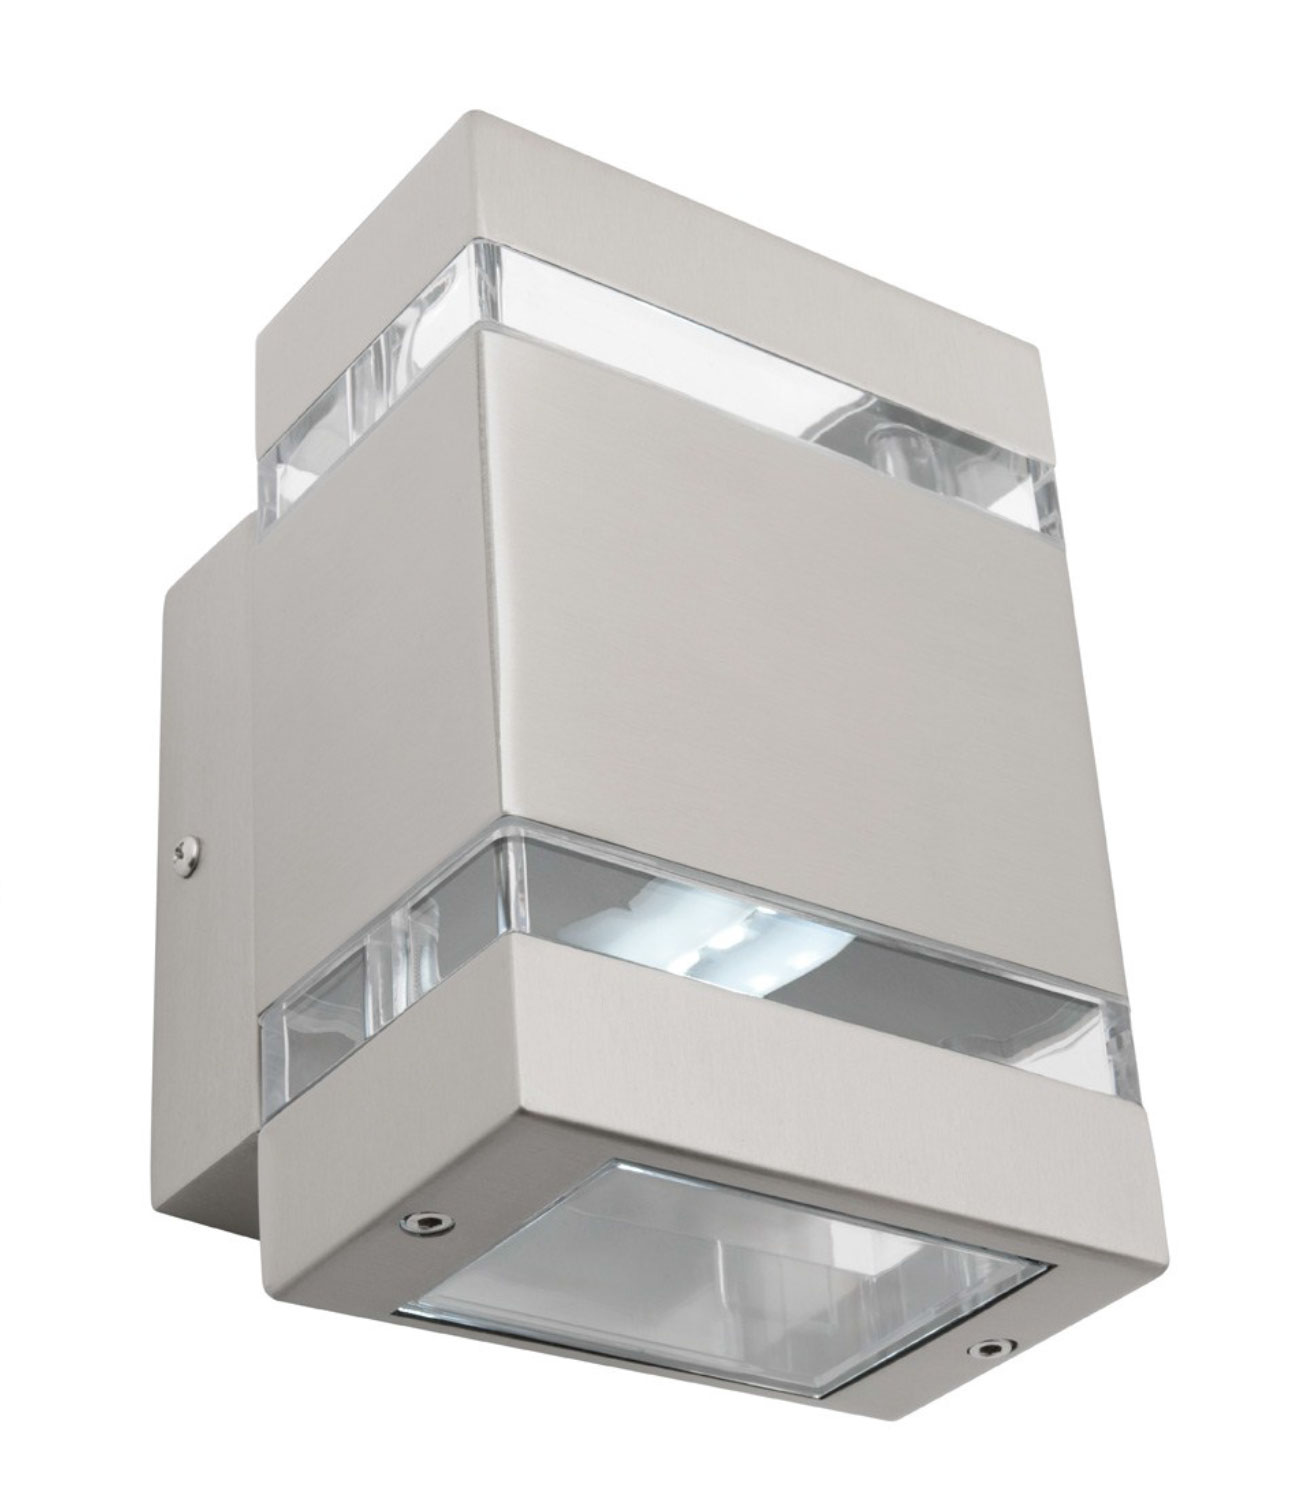 Hedland LED Up/Down Wall Light Stainless Steel | Online Lighting